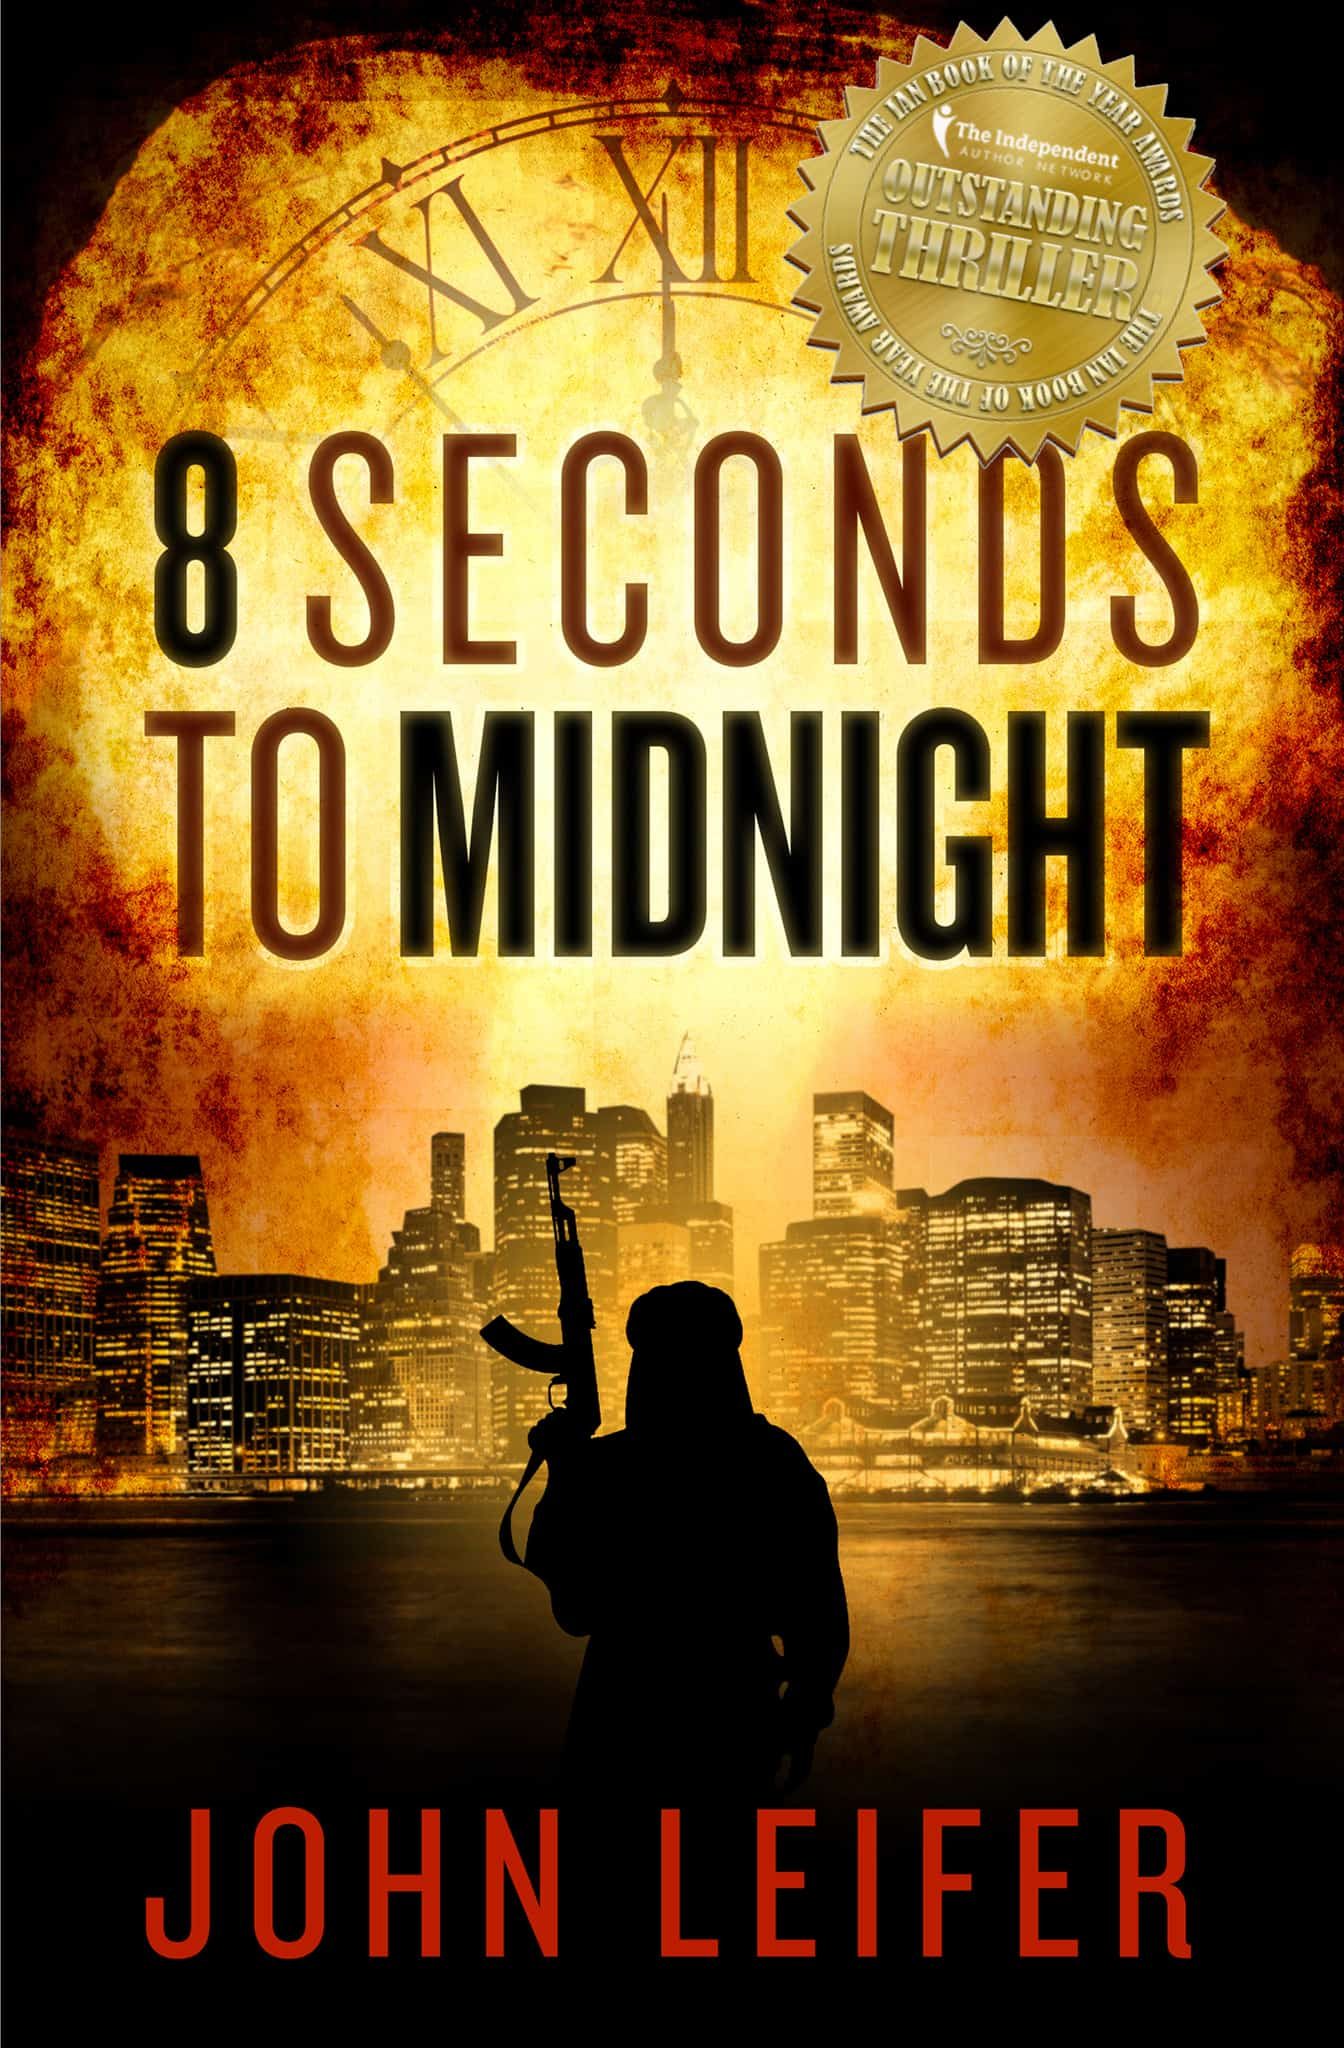 8 seconds to midnight outstanding thriller award - After You Hear It's Cancer